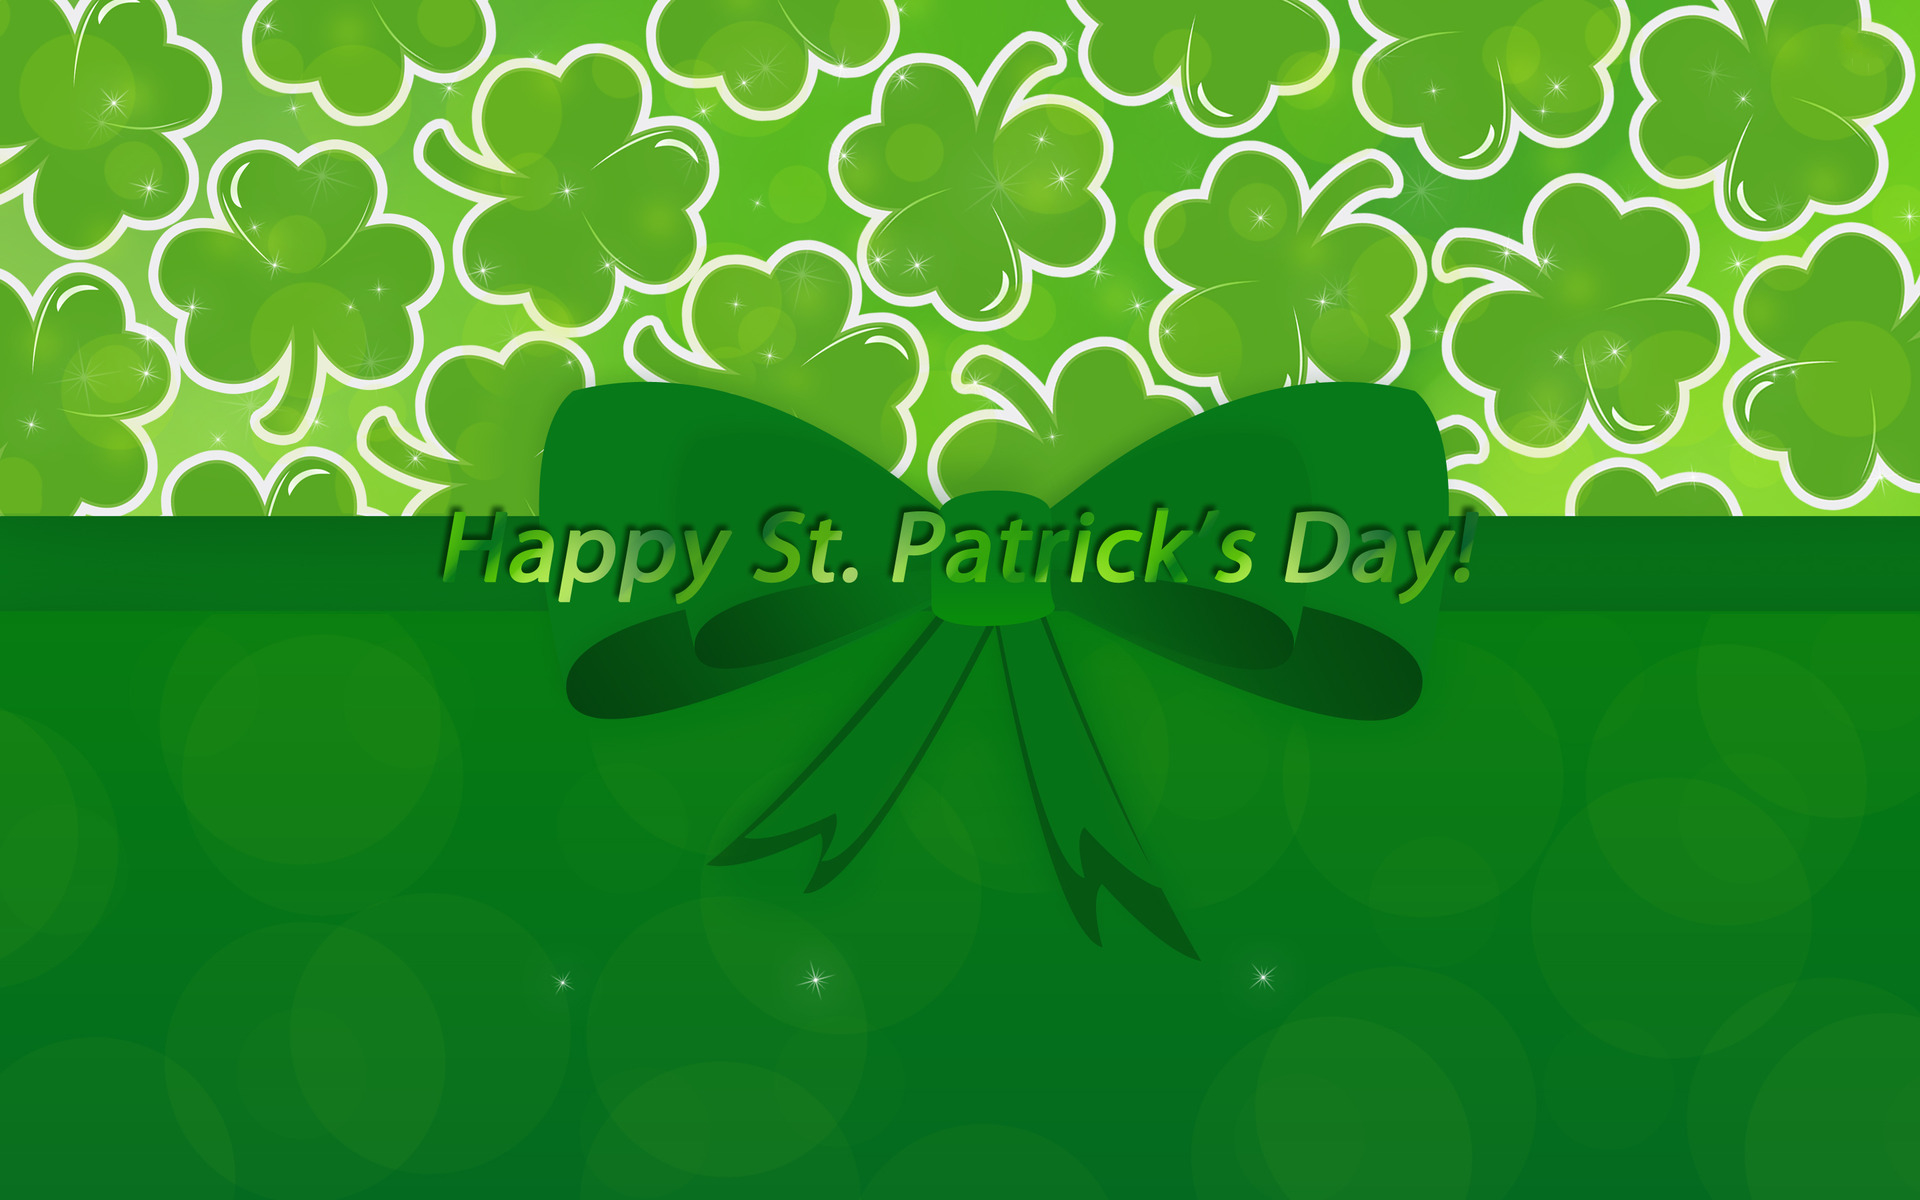 St Patricks Day Hd Wallpaper Background Image